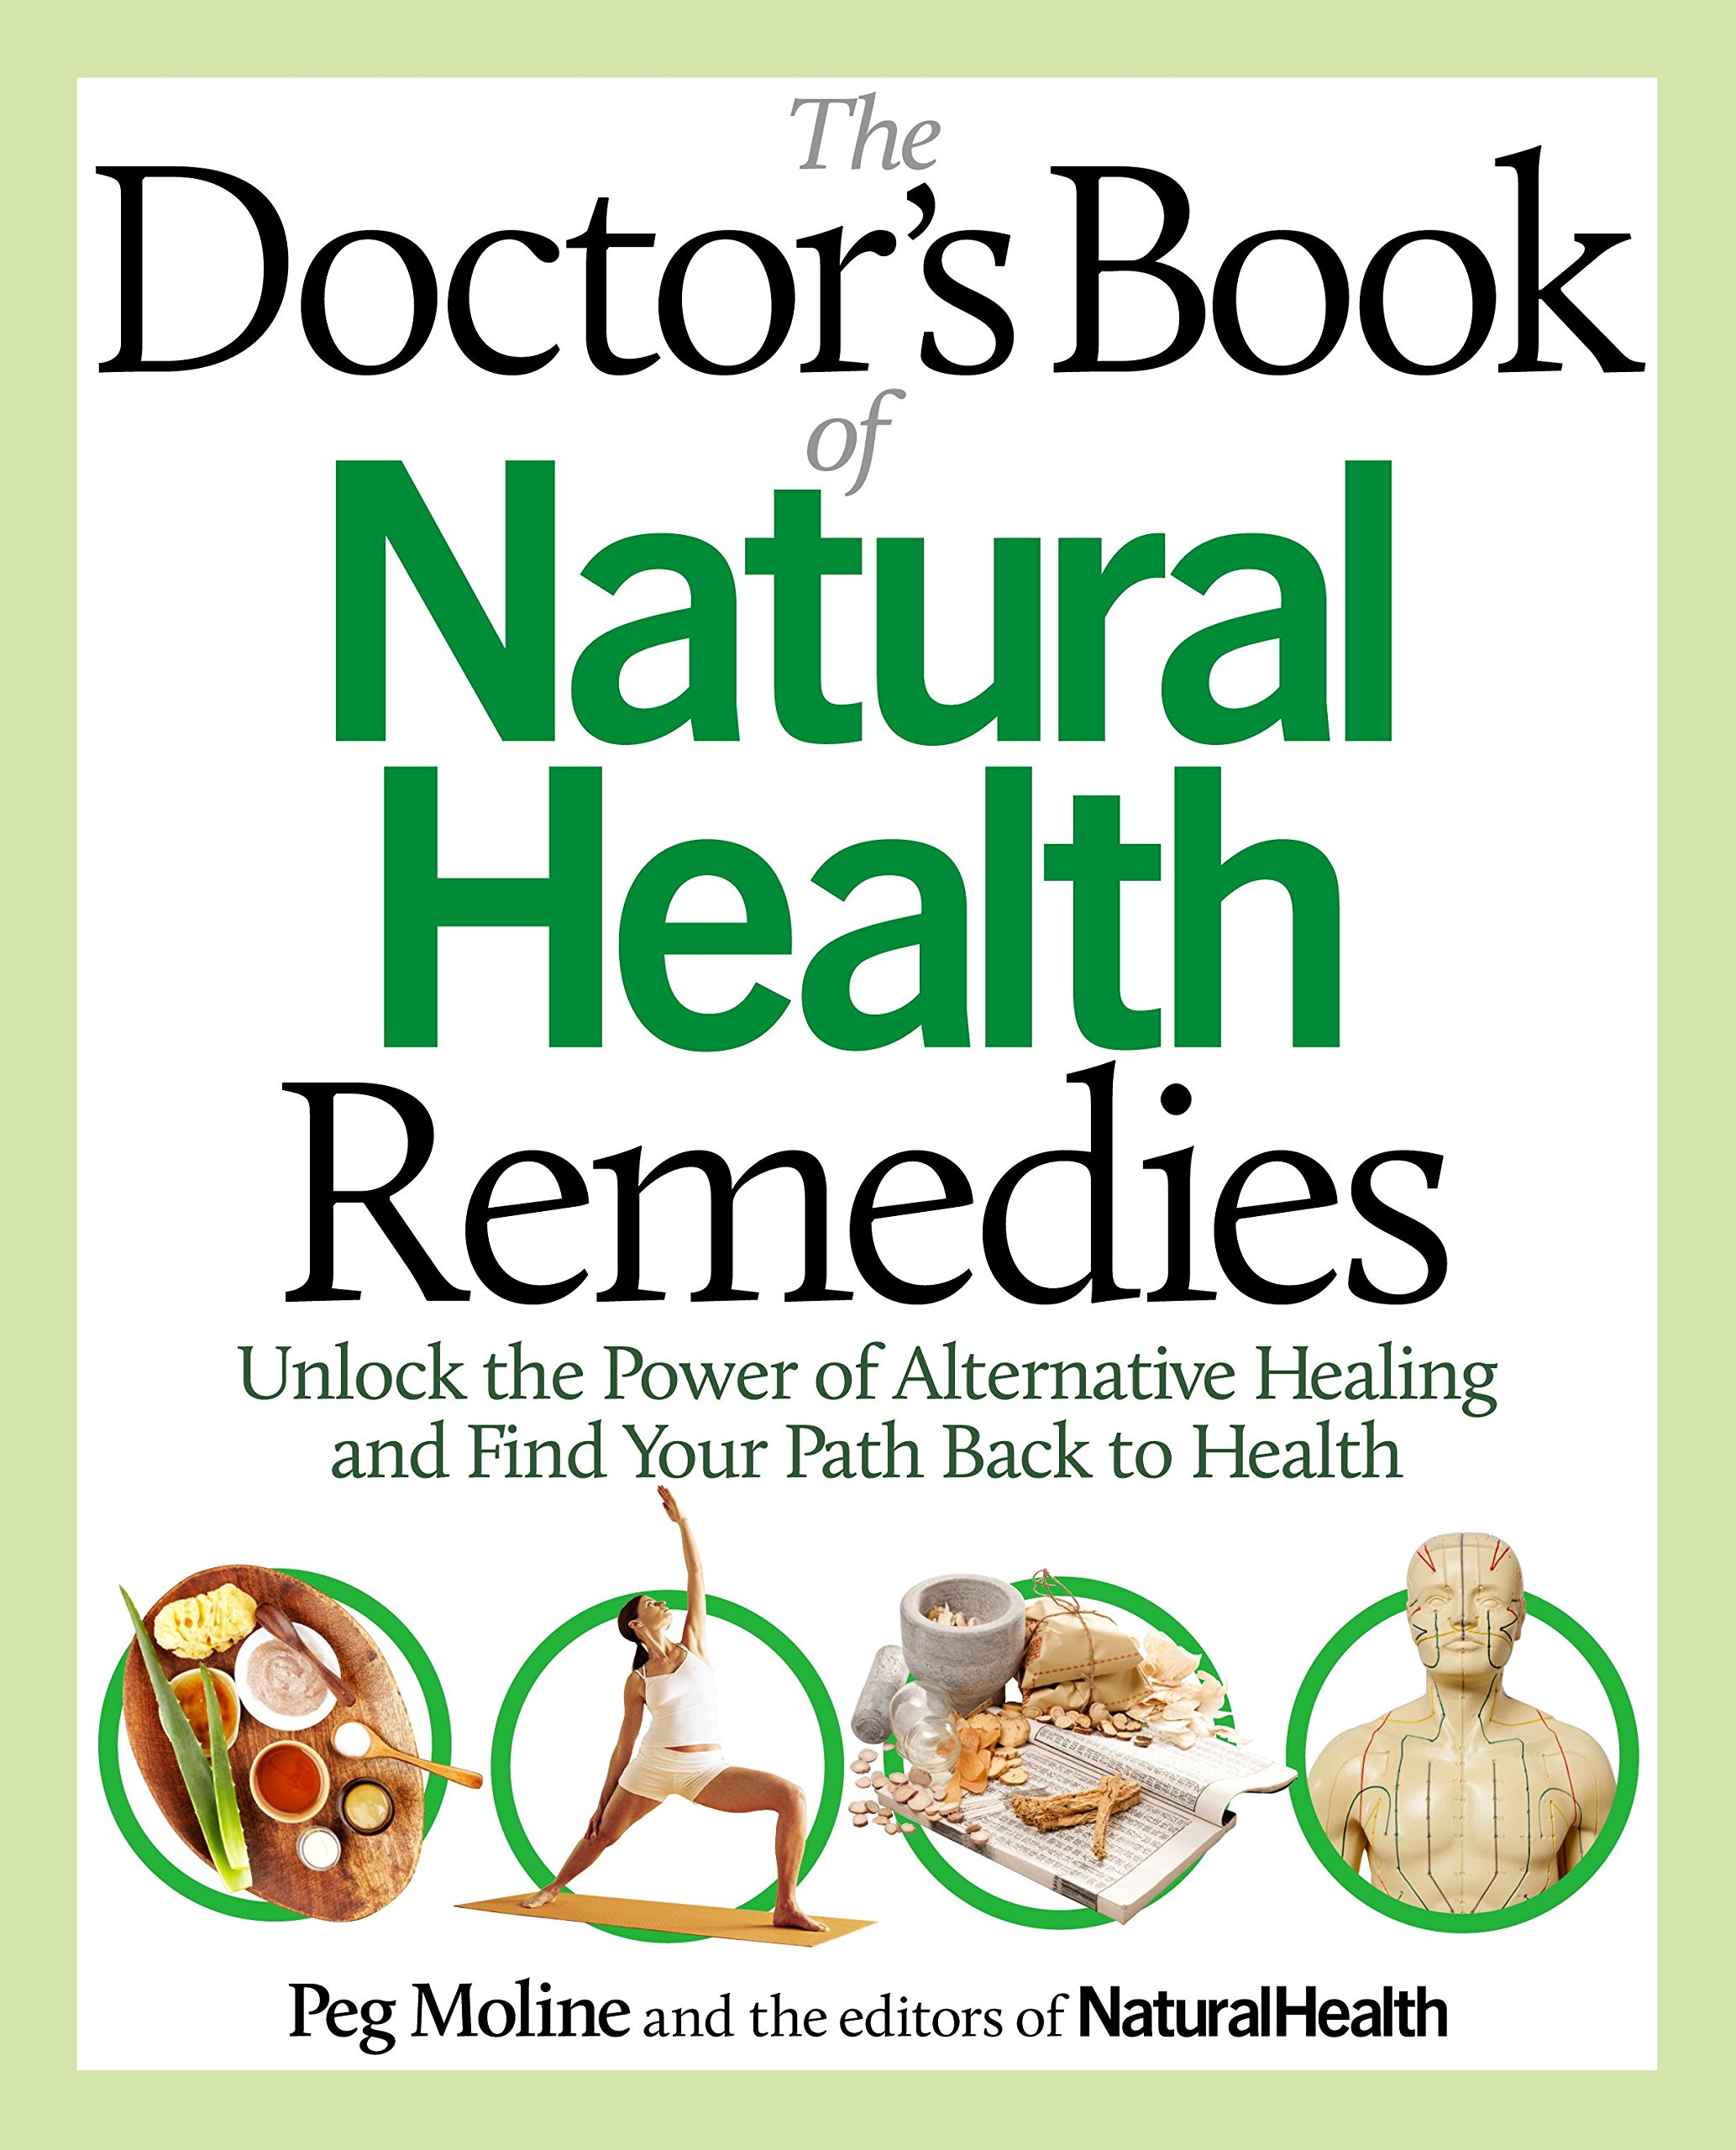 The Doctor S Book Of Natural Health Remedies Unlock The Power Of Alternative Healing And Find Your Path Back To Health Moline Peg Editors Of Natural Health 9780989594080 Amazon Com Books